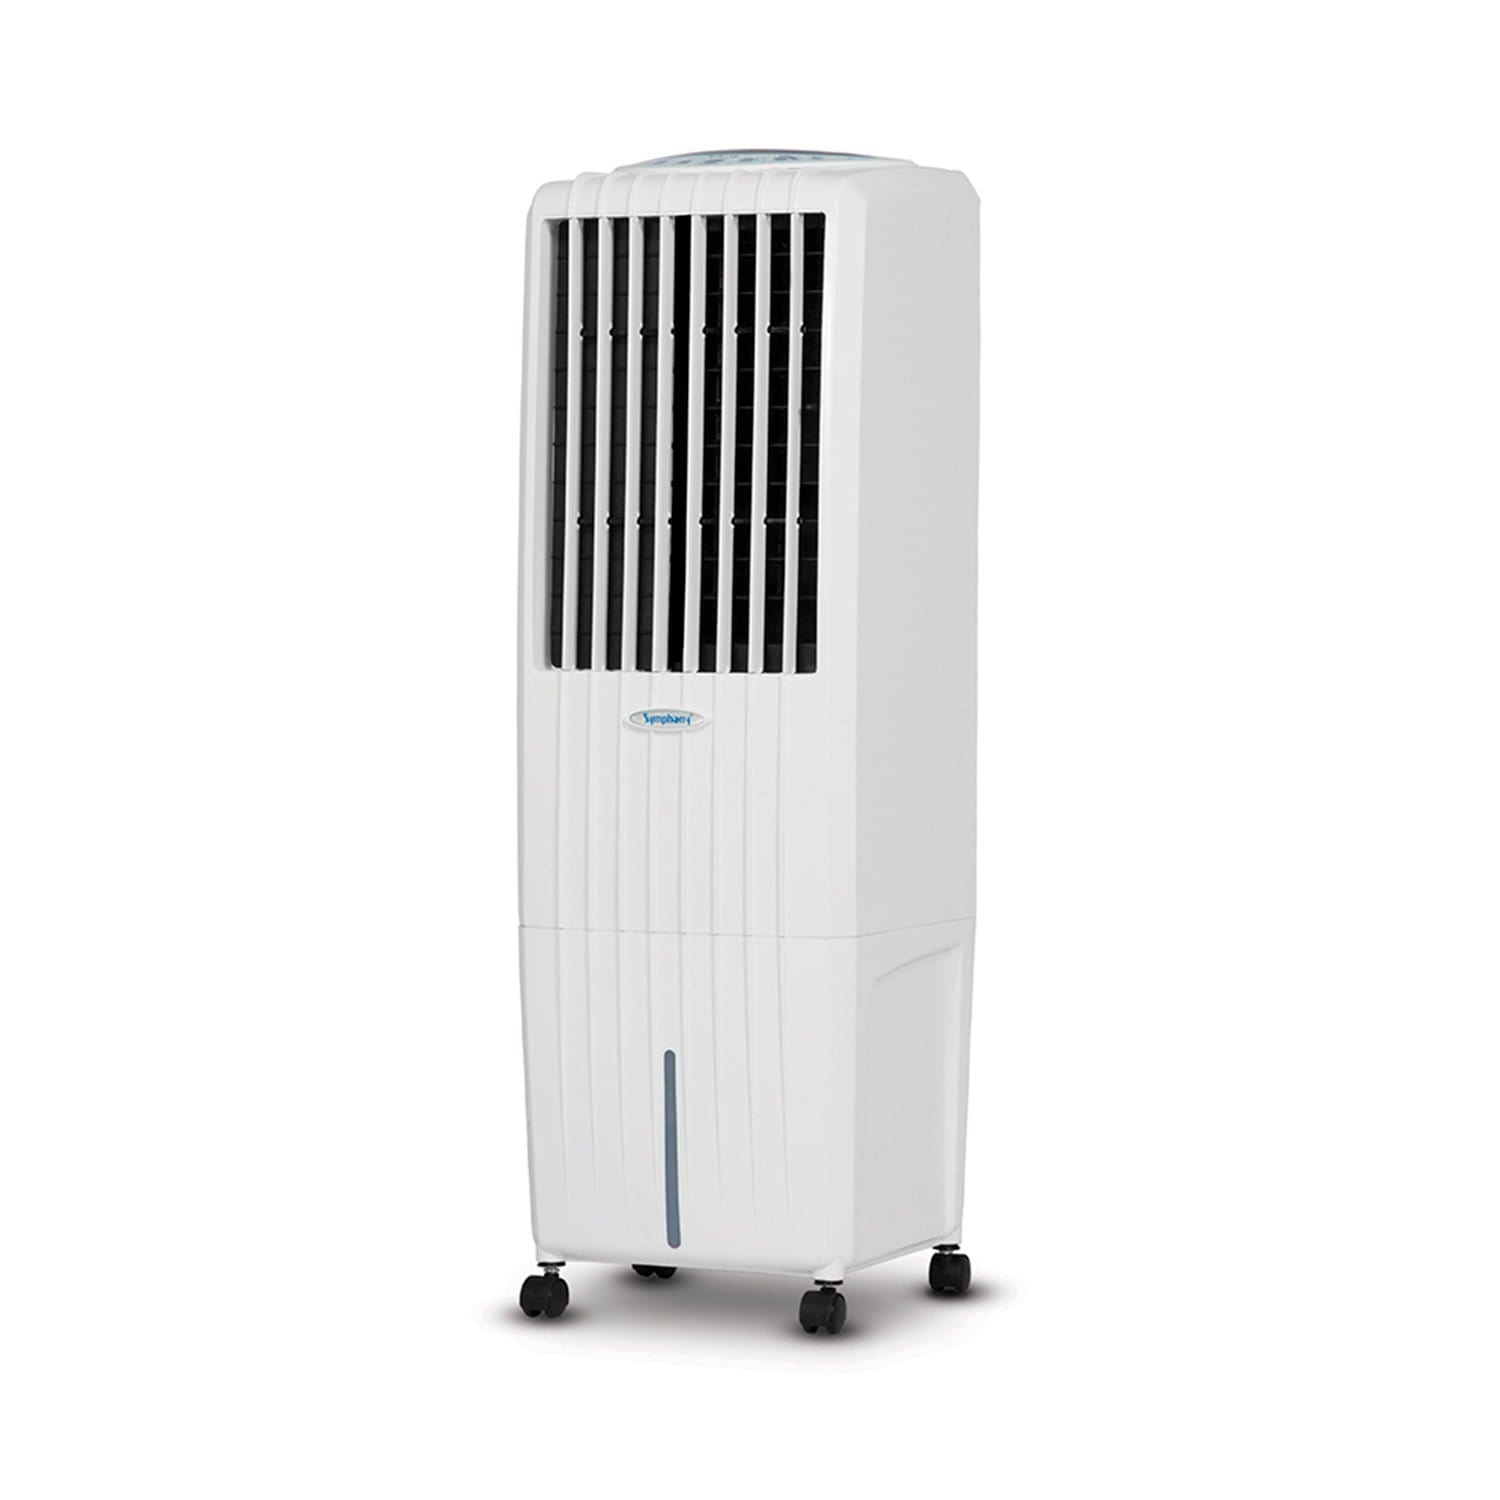 Symphony Diet 22i 22 Litre Air Cooler with Remote Control (White) - KITCHEN MART